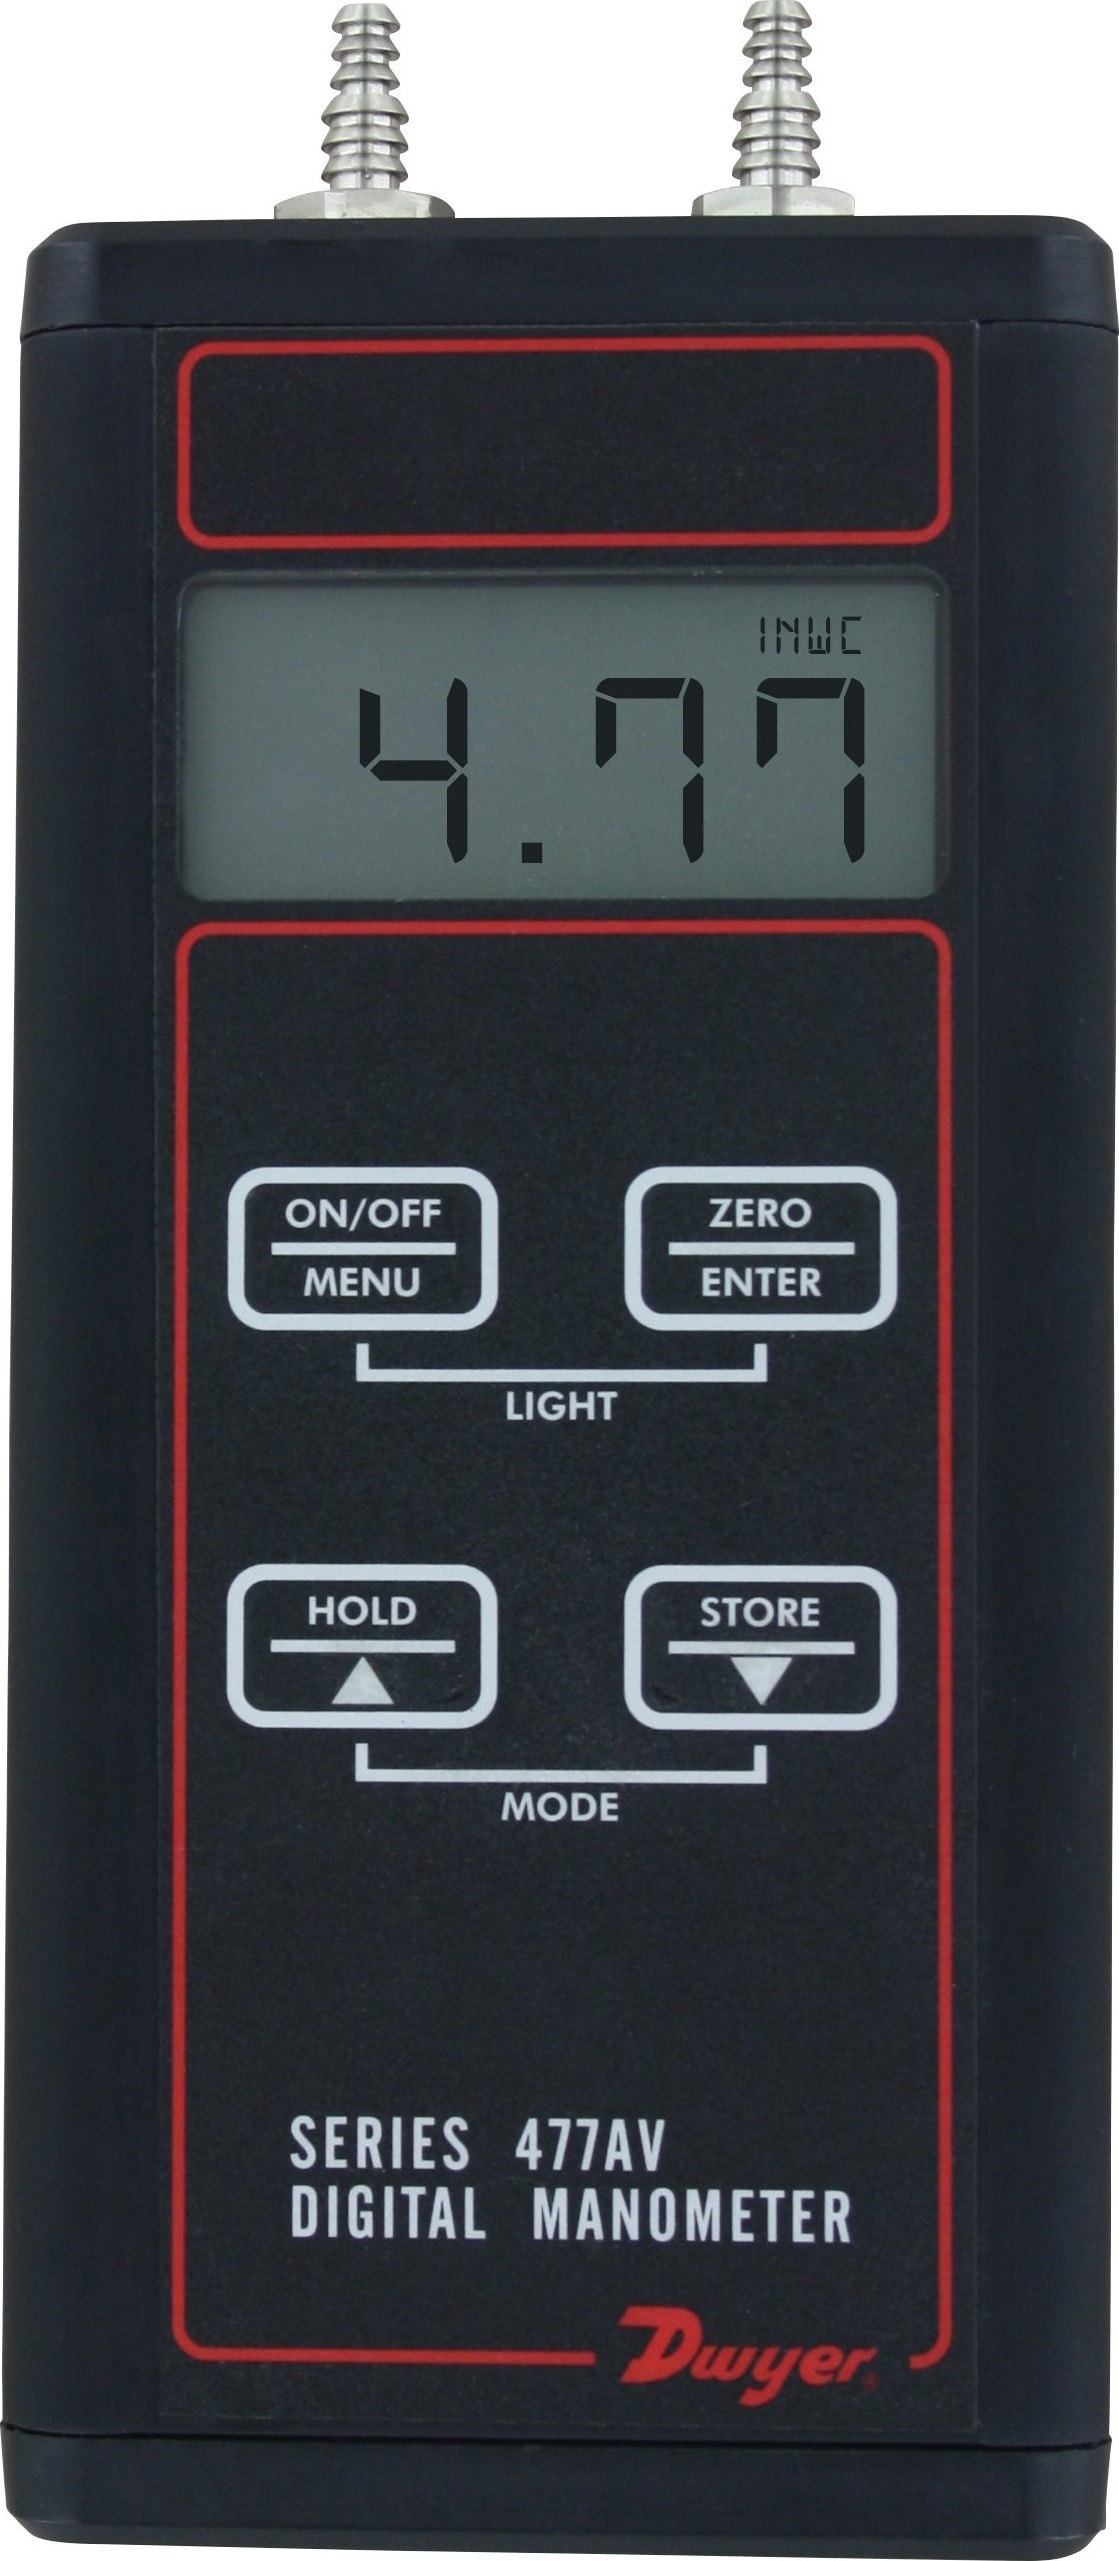 Series 477AV Handheld Digital Manometer